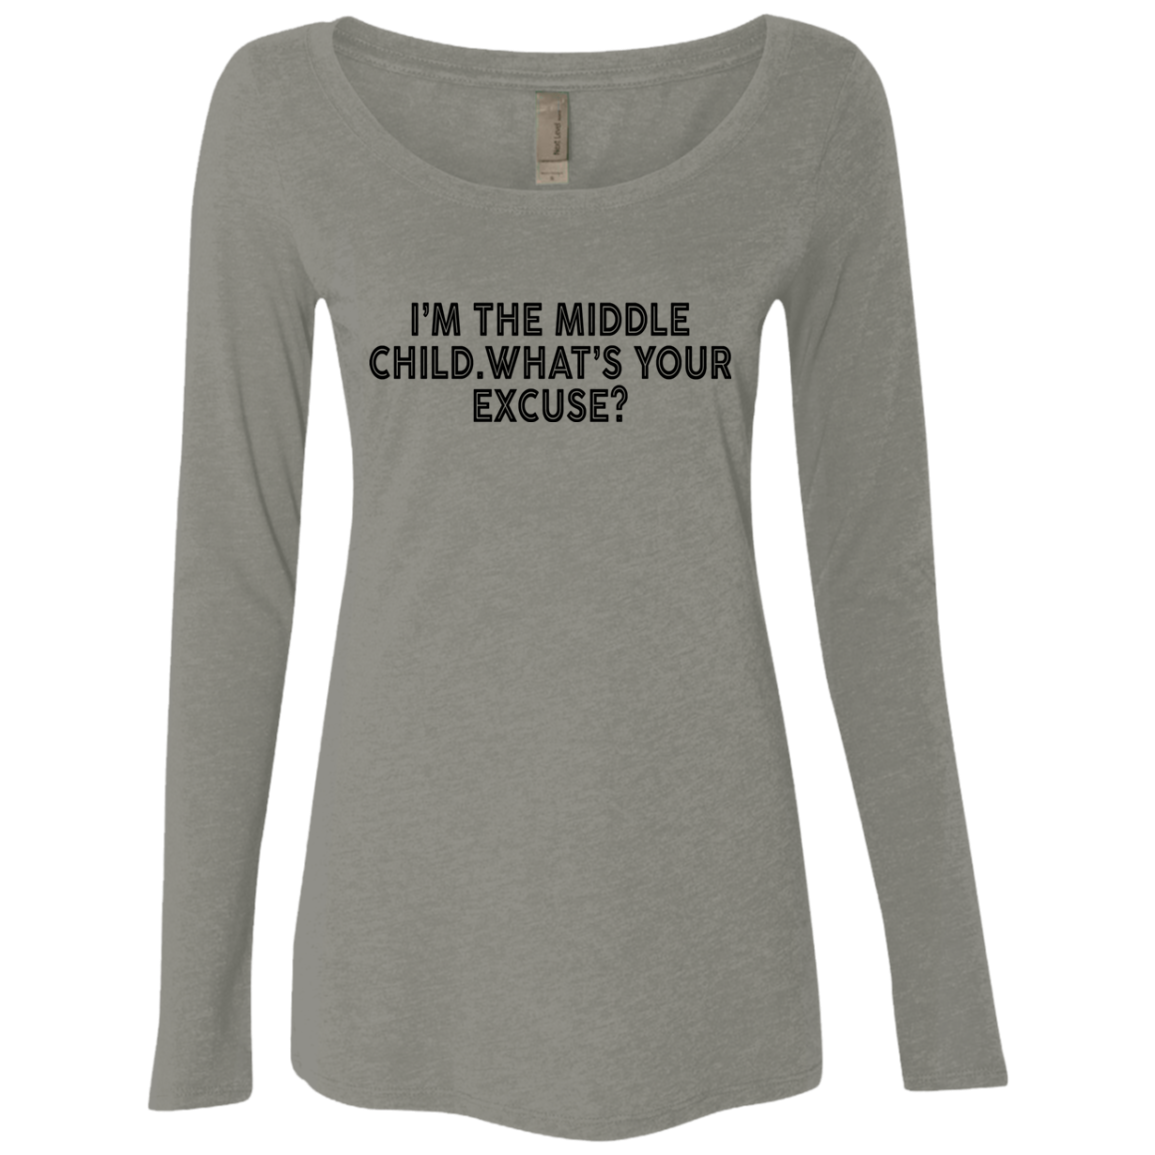 I'm The Middle Child What's Your Excuse Women's Long Sleeve Tee